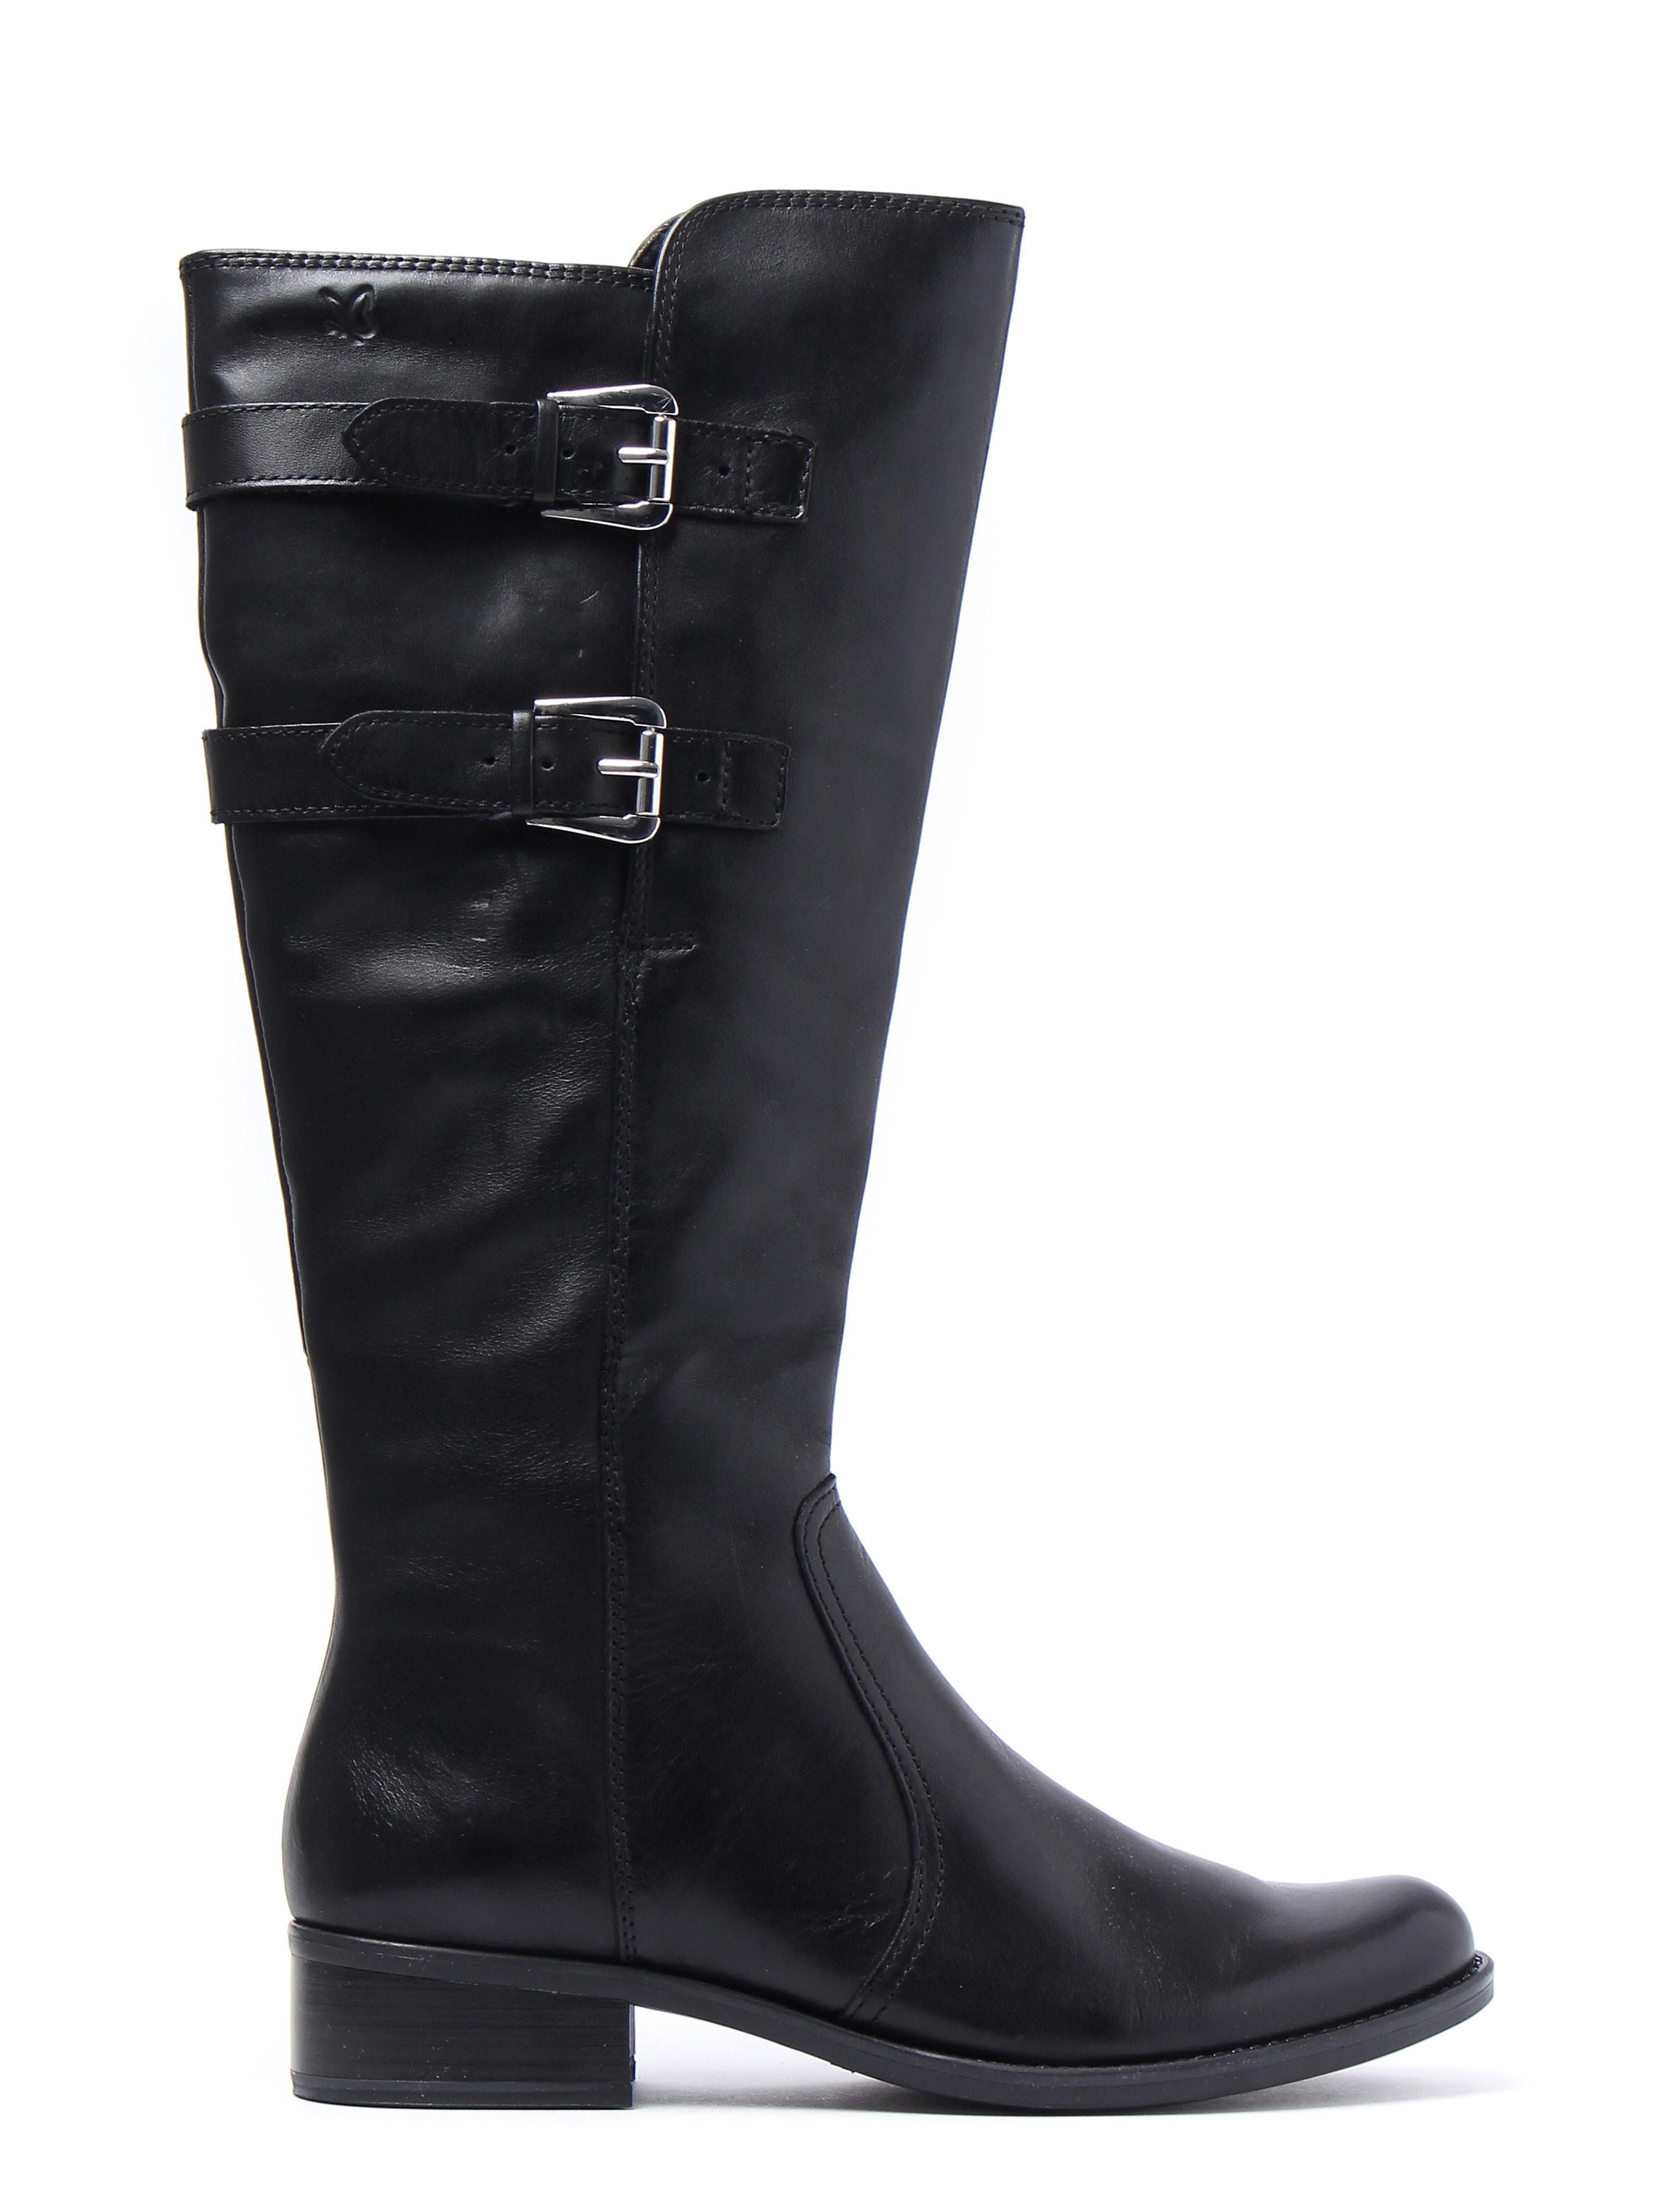 Caprice Women's Nappa Tall Buckle Boots - Black Leather